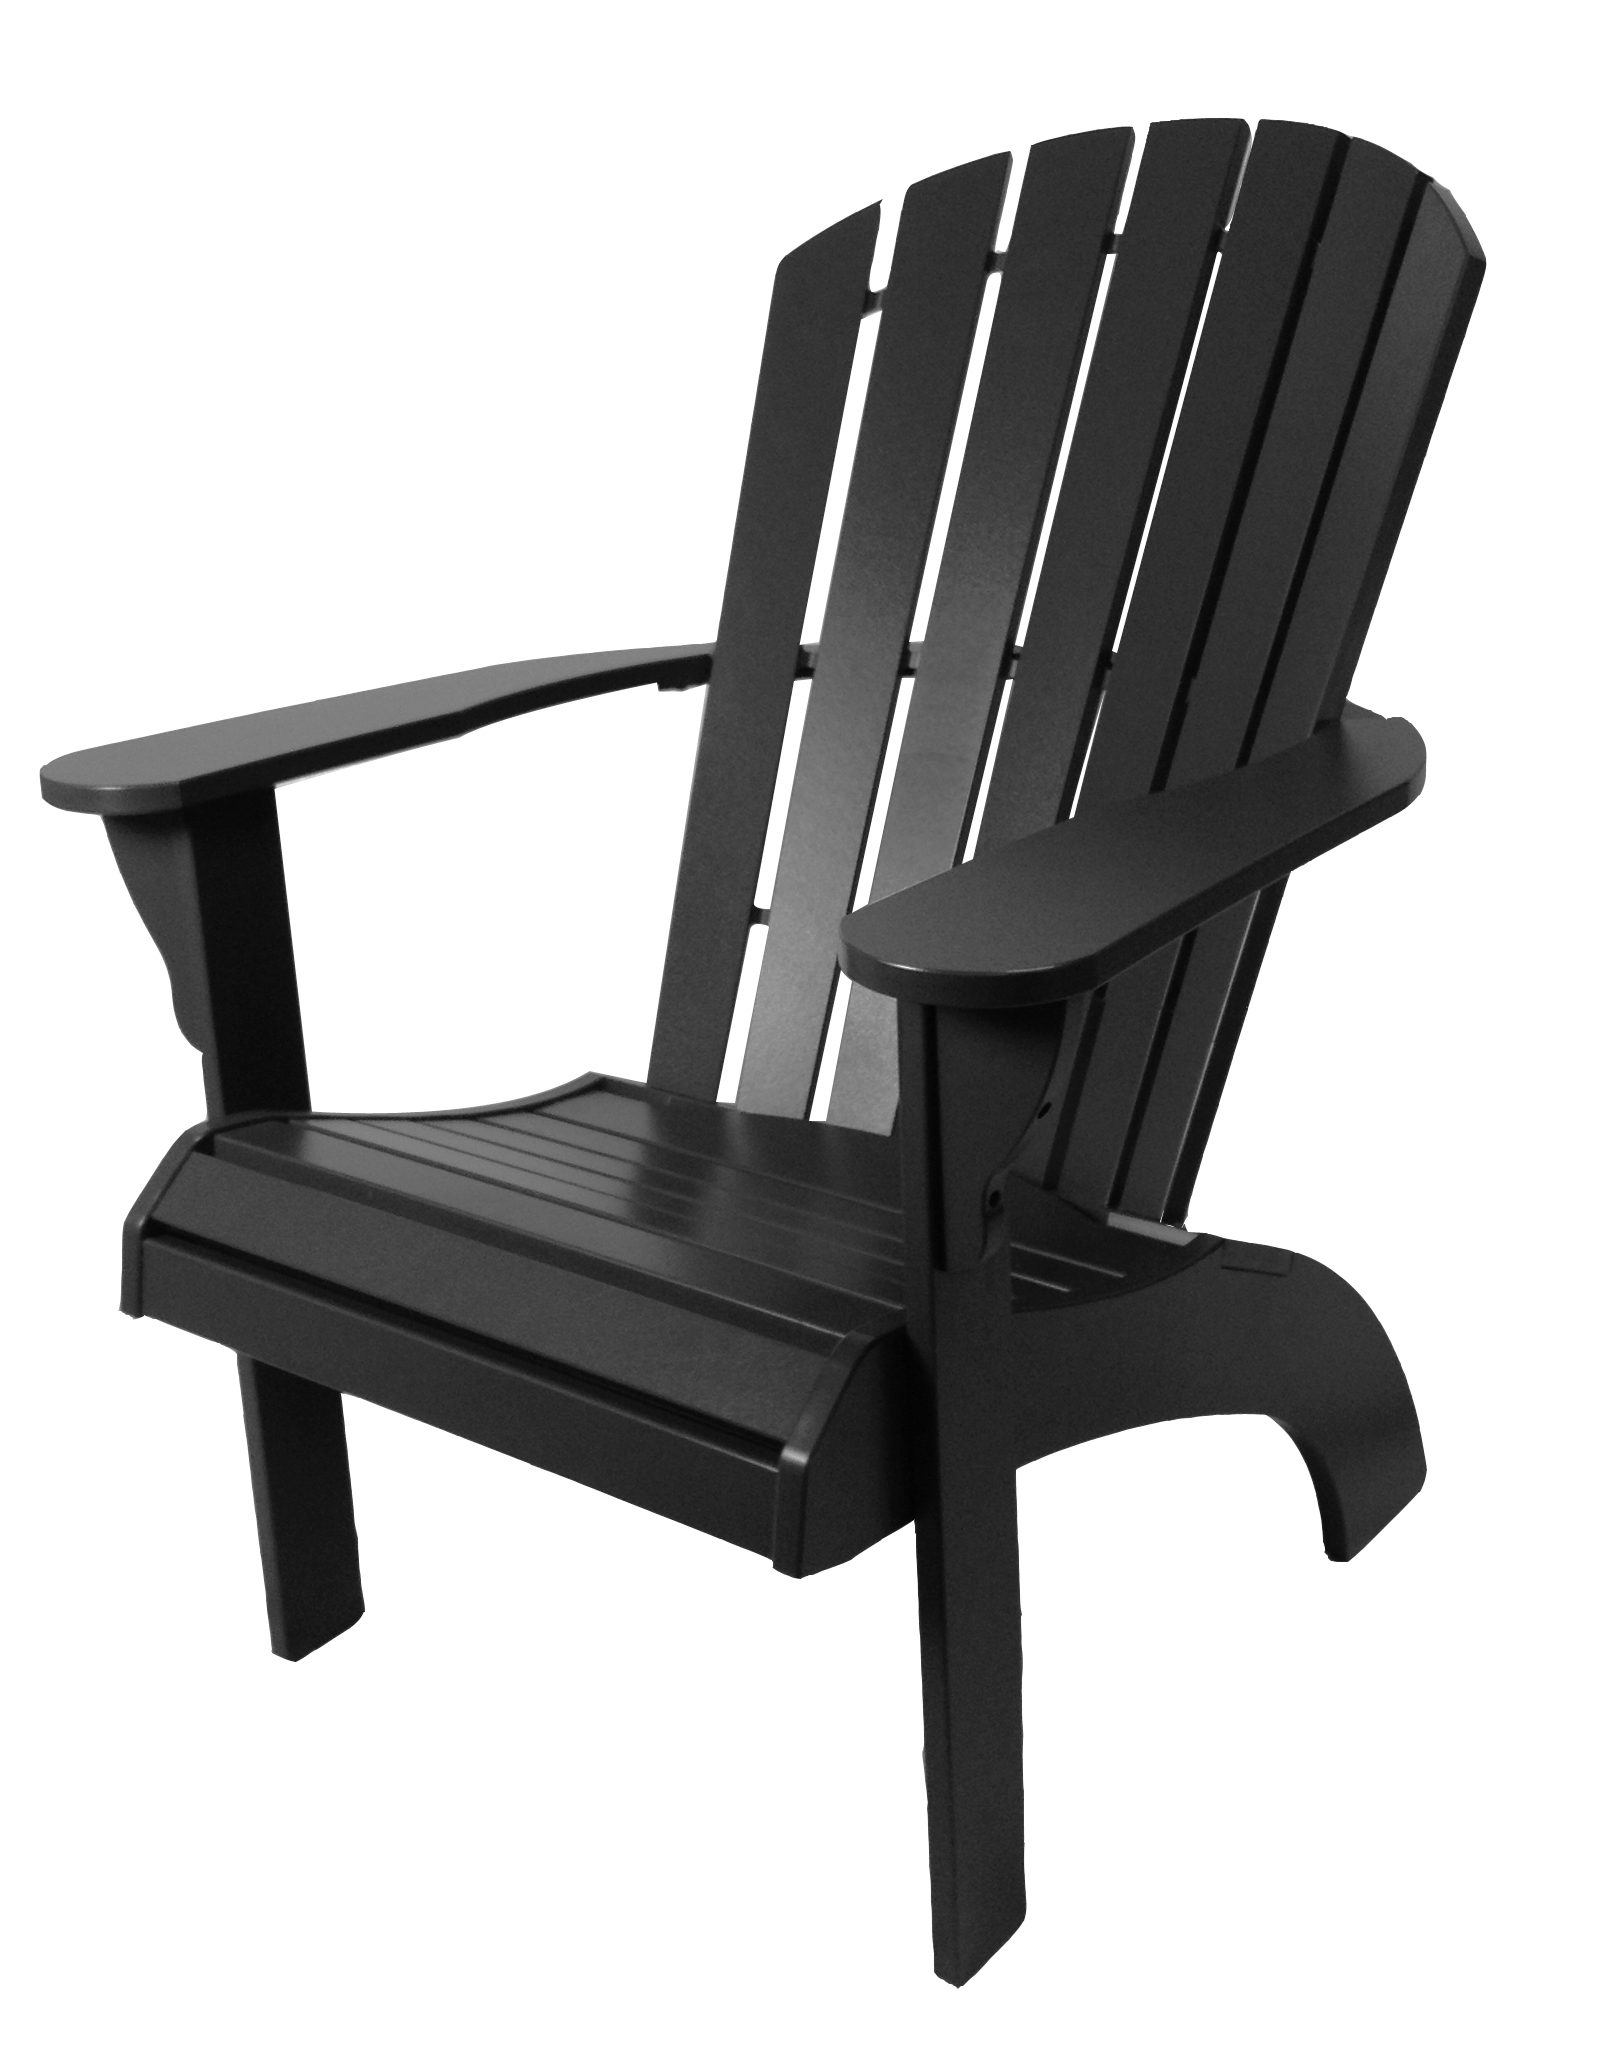 MGP ADIRONDACK CHAIR W4444 $289.00